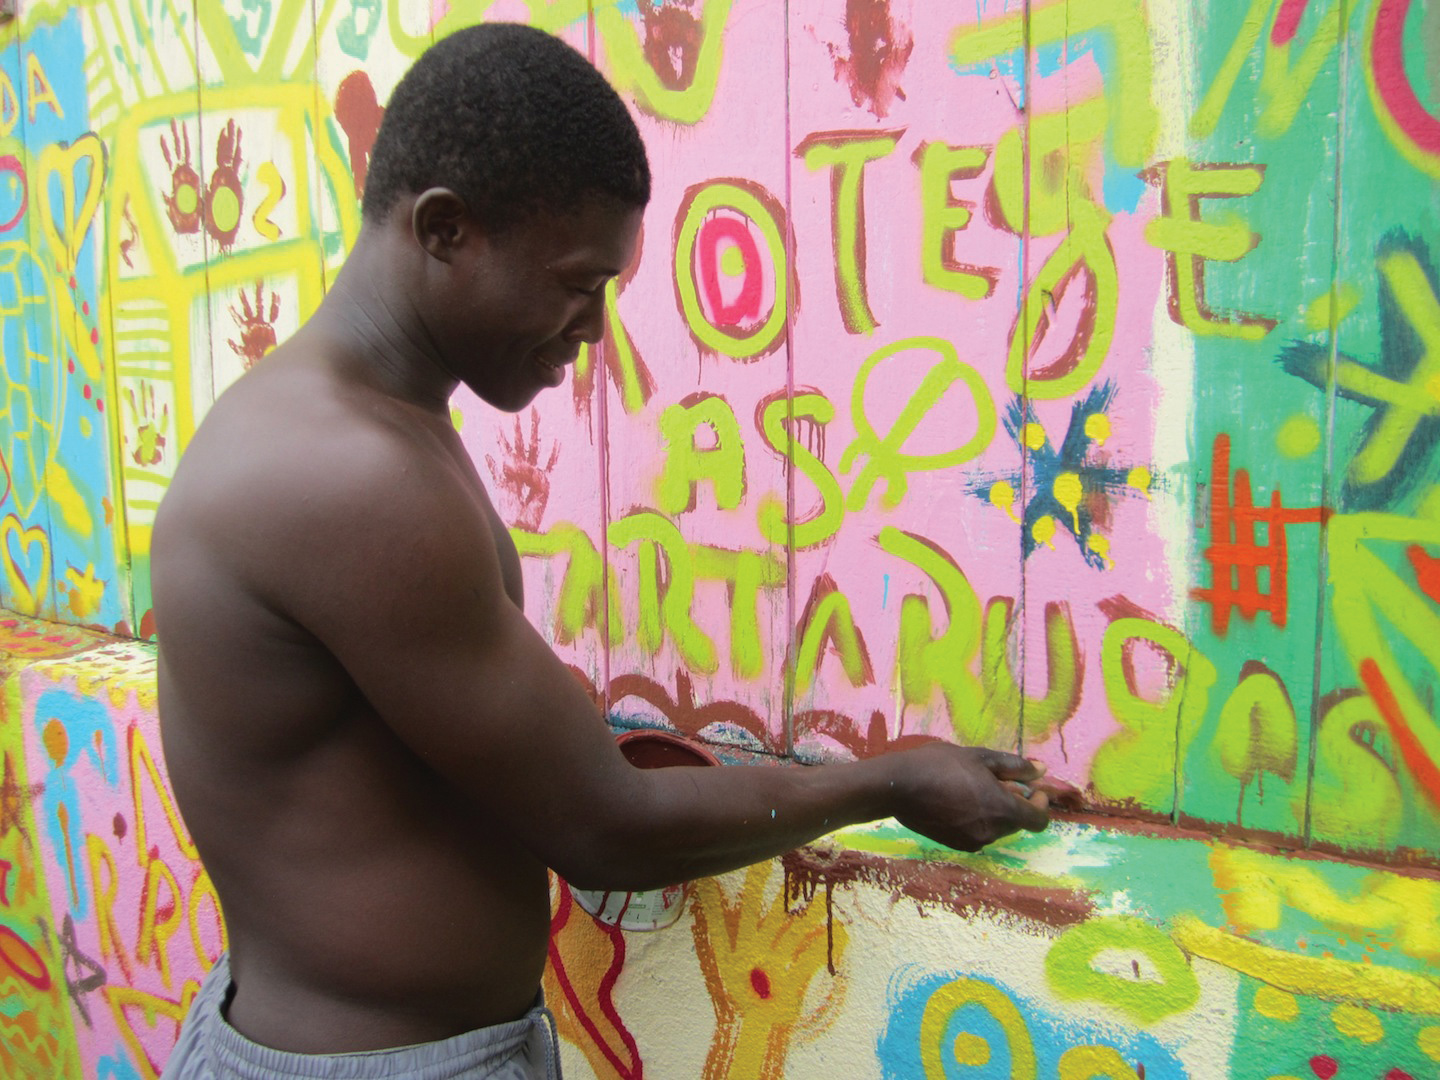 A member of the coastal community Morro Peixe helps paint an educational mural. © VICTOR JIMÉNEZ